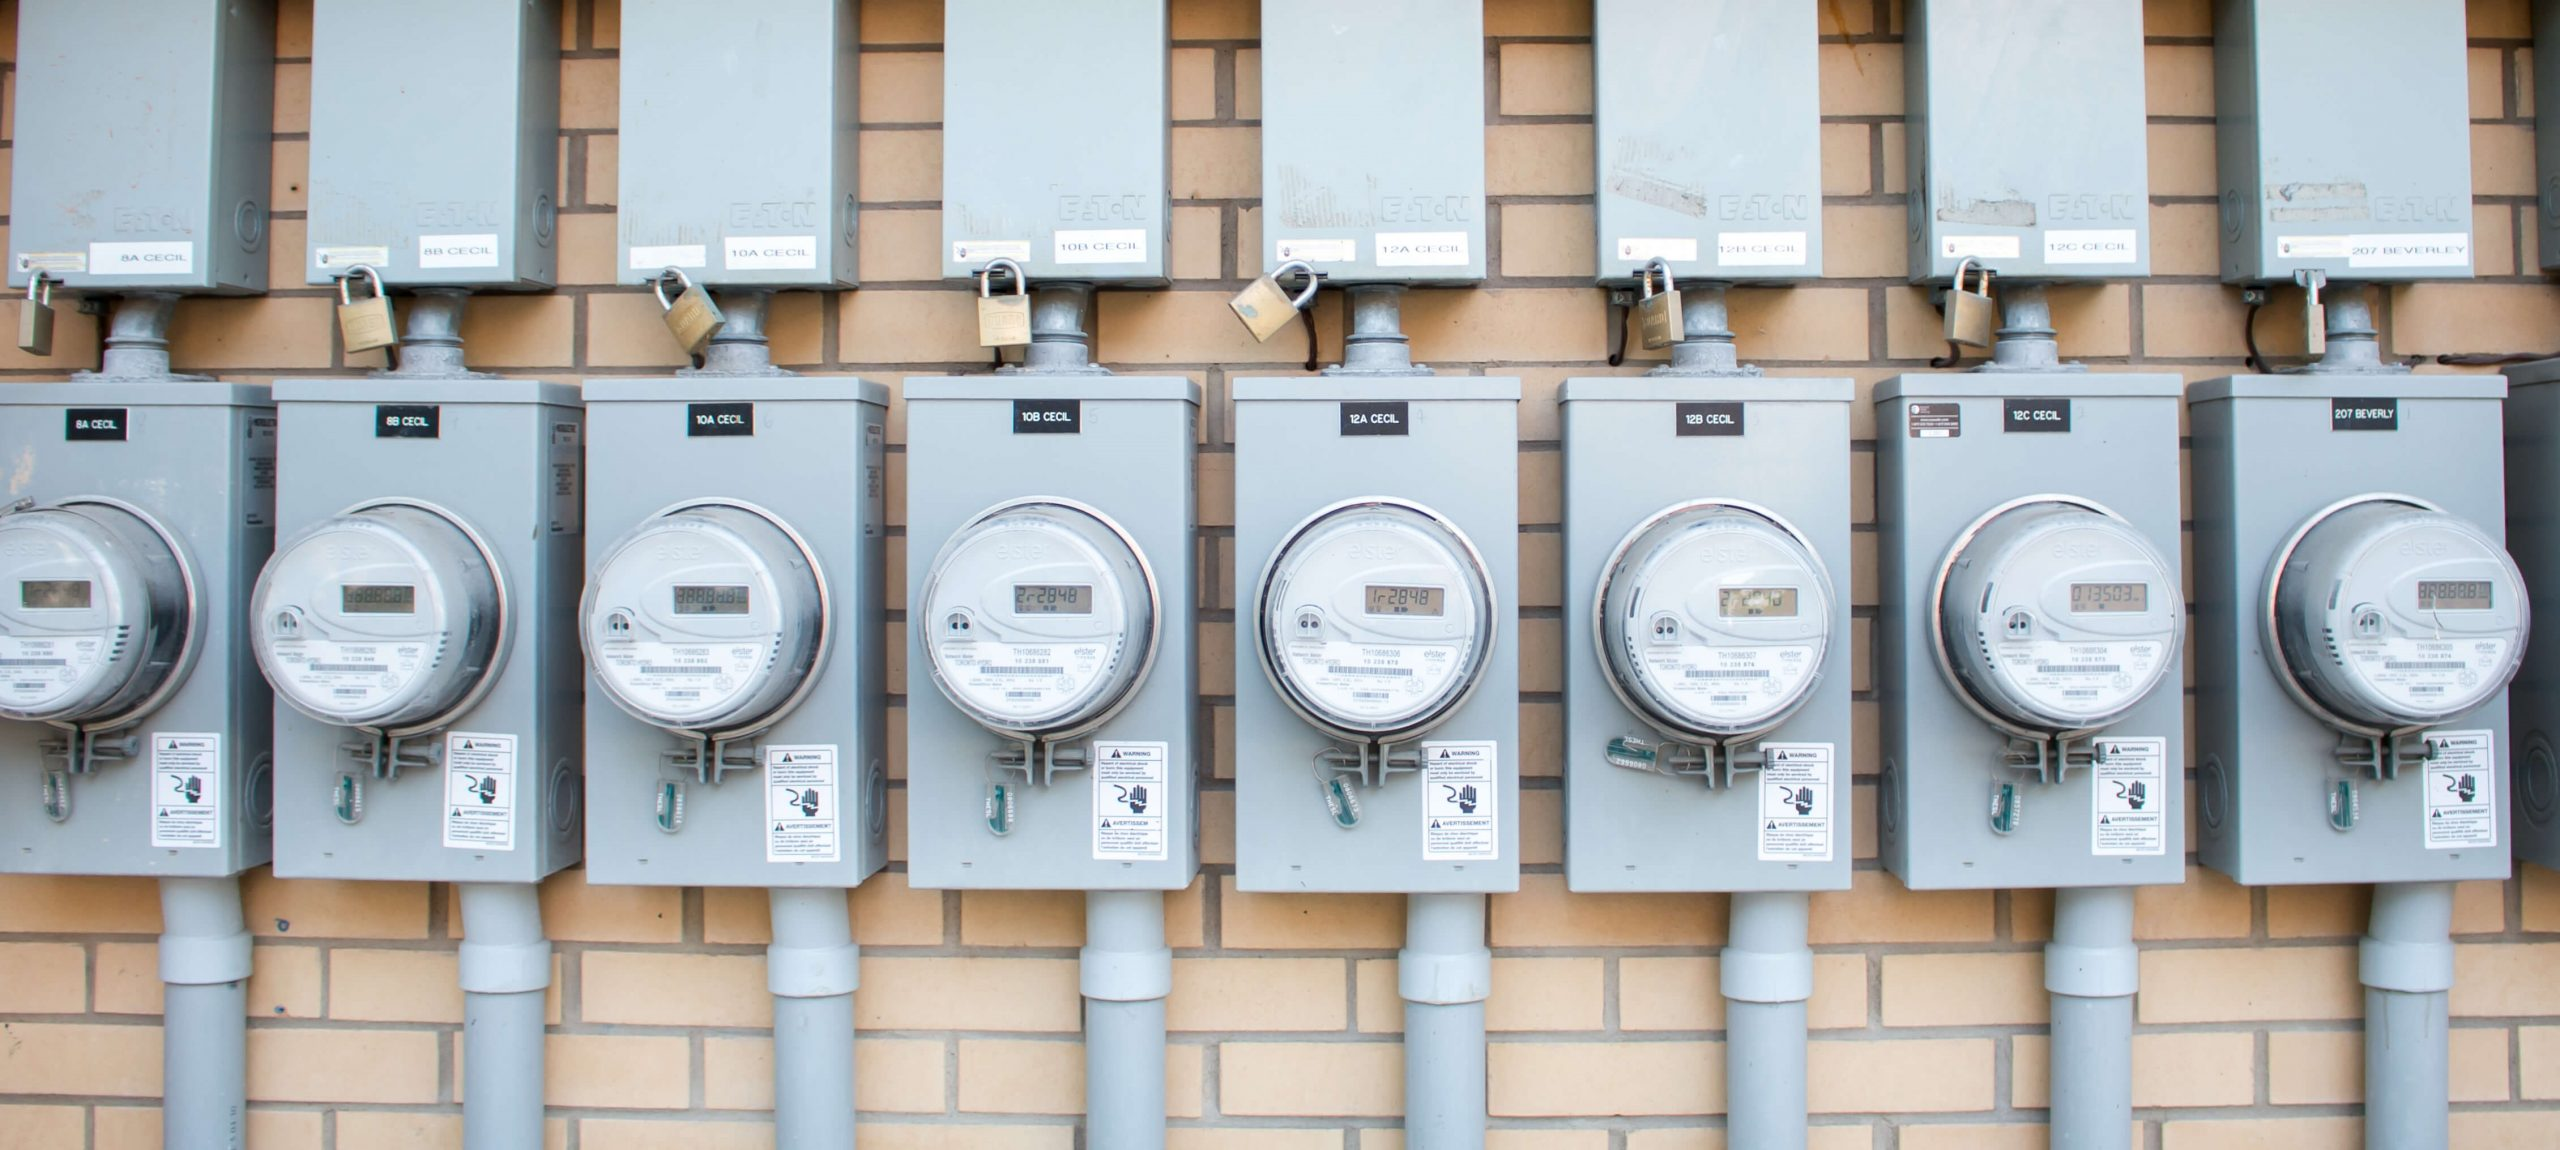 Wall of electricity meters | 5 Energy Billing Errors as Silent Killers | Cost Control Associates